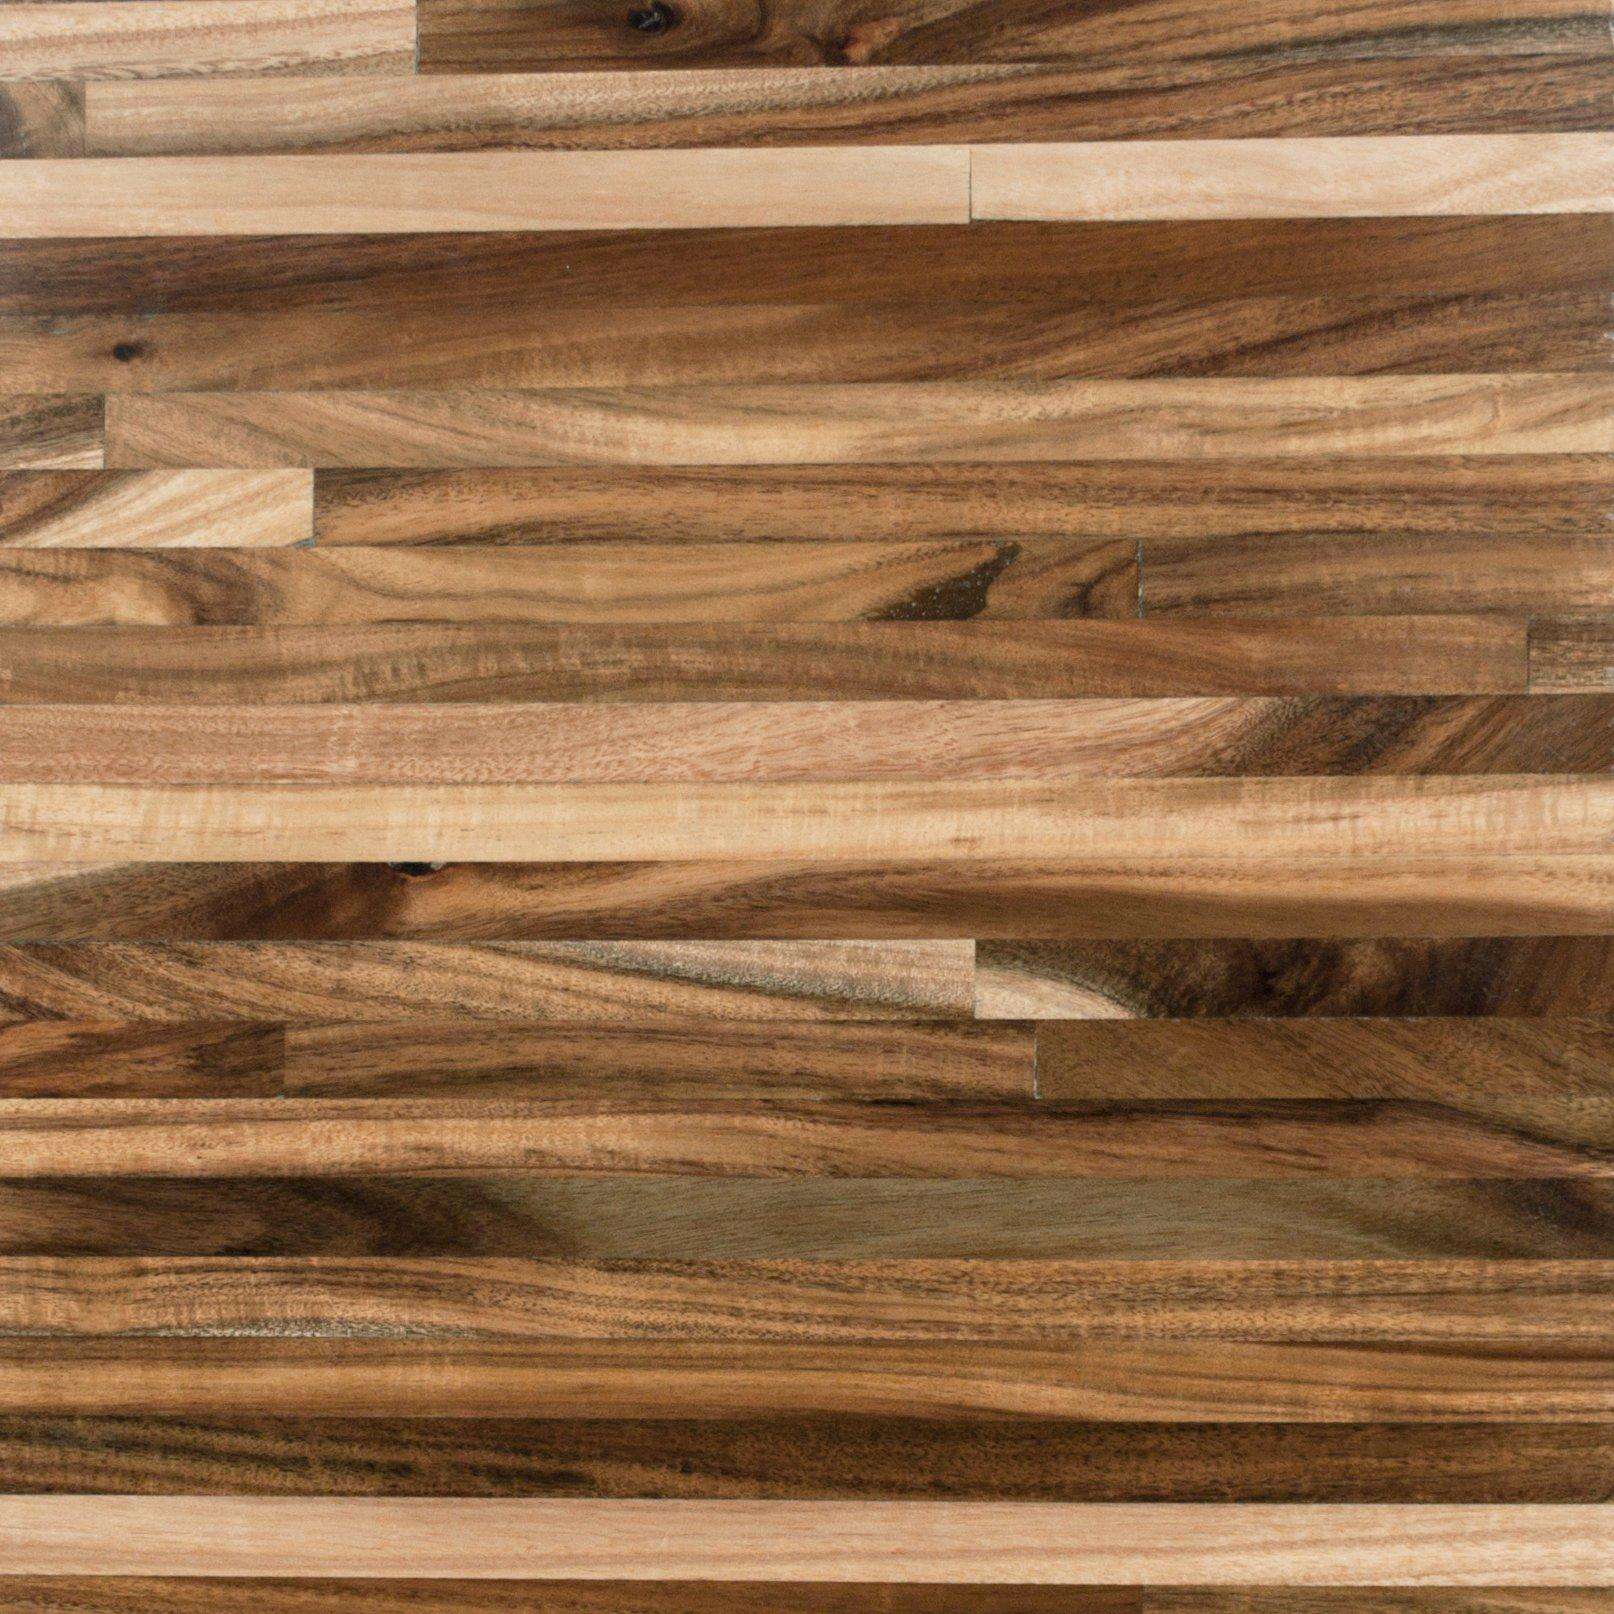 acacia butcher block countertop 8ft